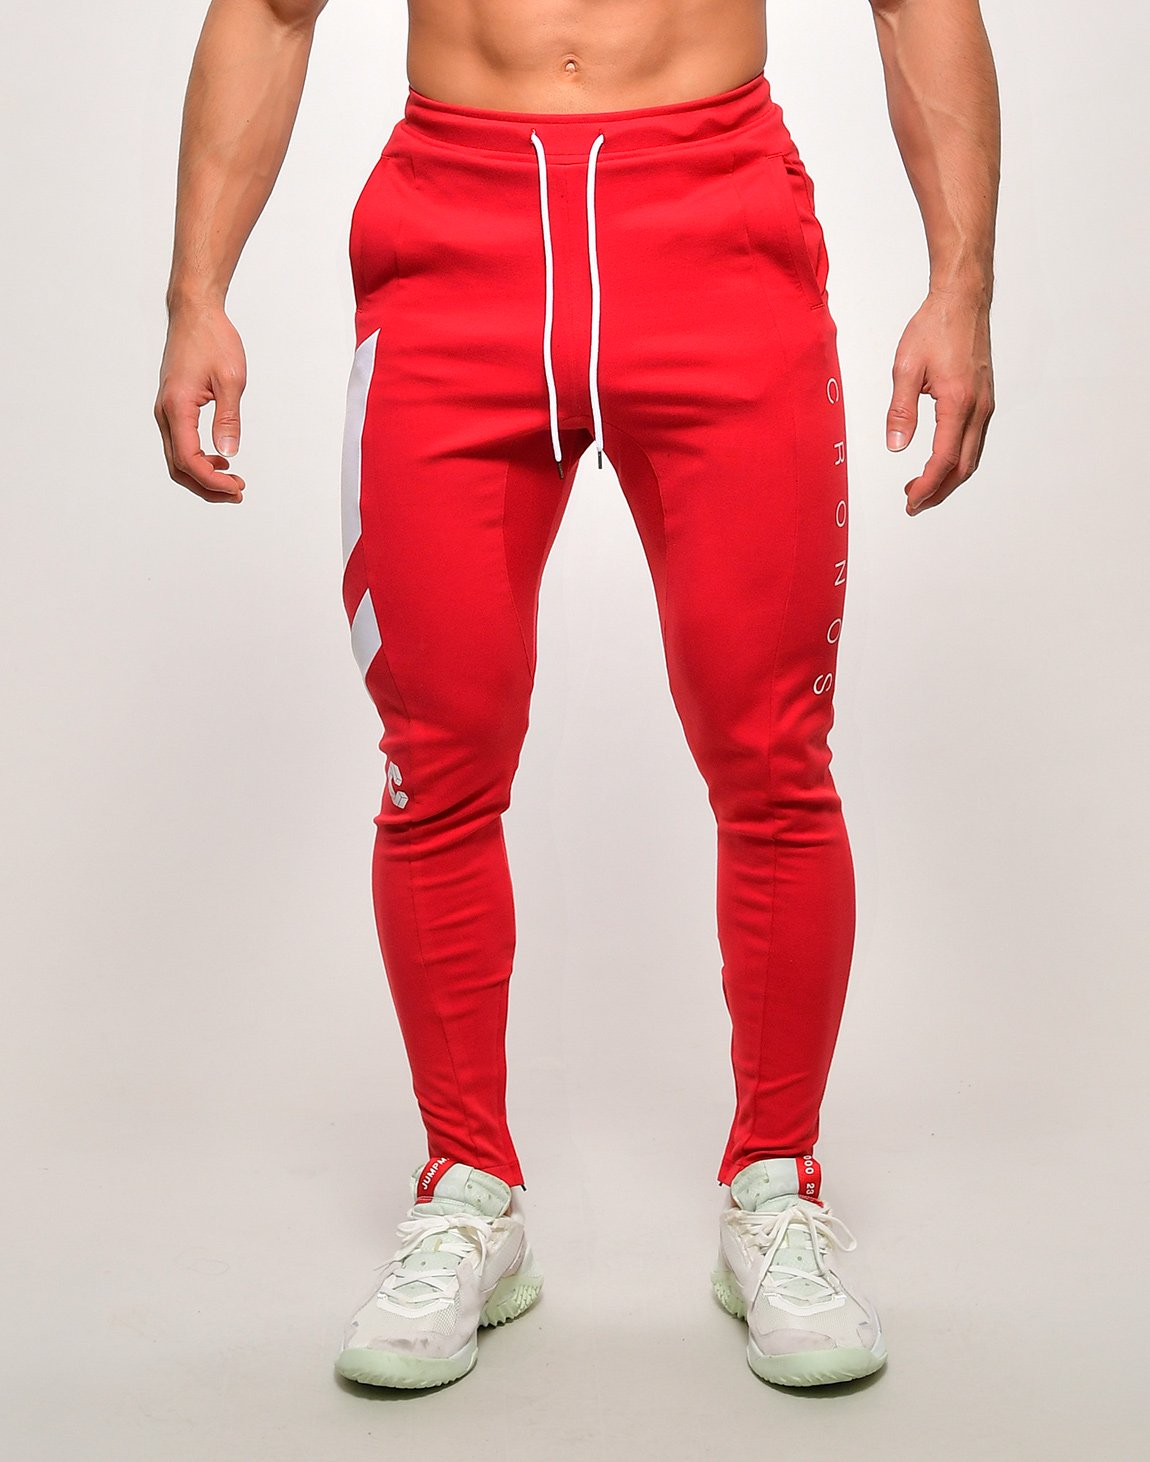 <img class='new_mark_img1' src='https://img.shop-pro.jp/img/new/icons55.gif' style='border:none;display:inline;margin:0px;padding:0px;width:auto;' />CRONOS SLANTED LINE PANTS【RED】